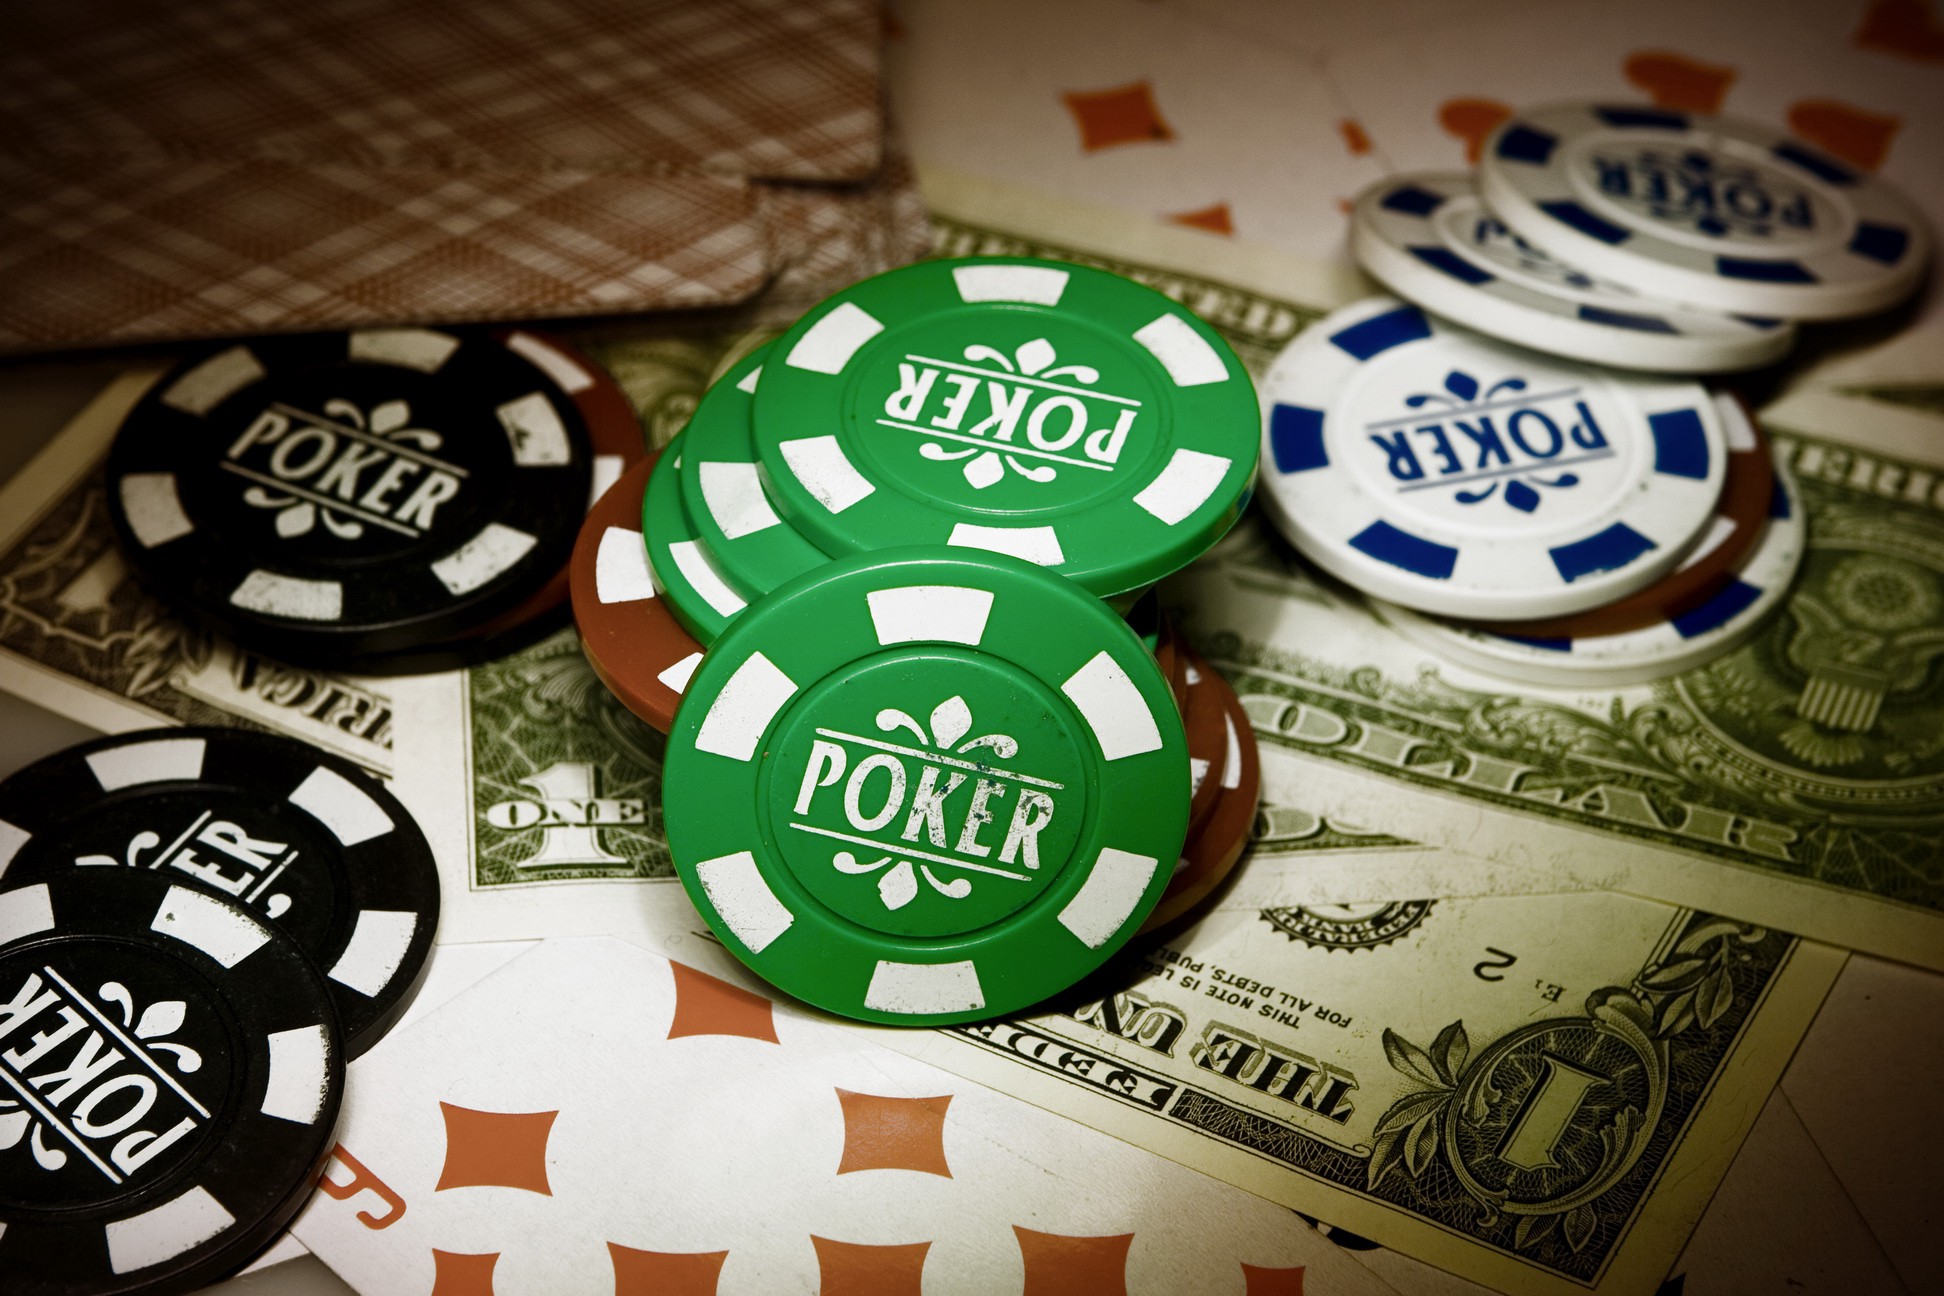 How can I start my own online gambling business? - Theodore Dent ...